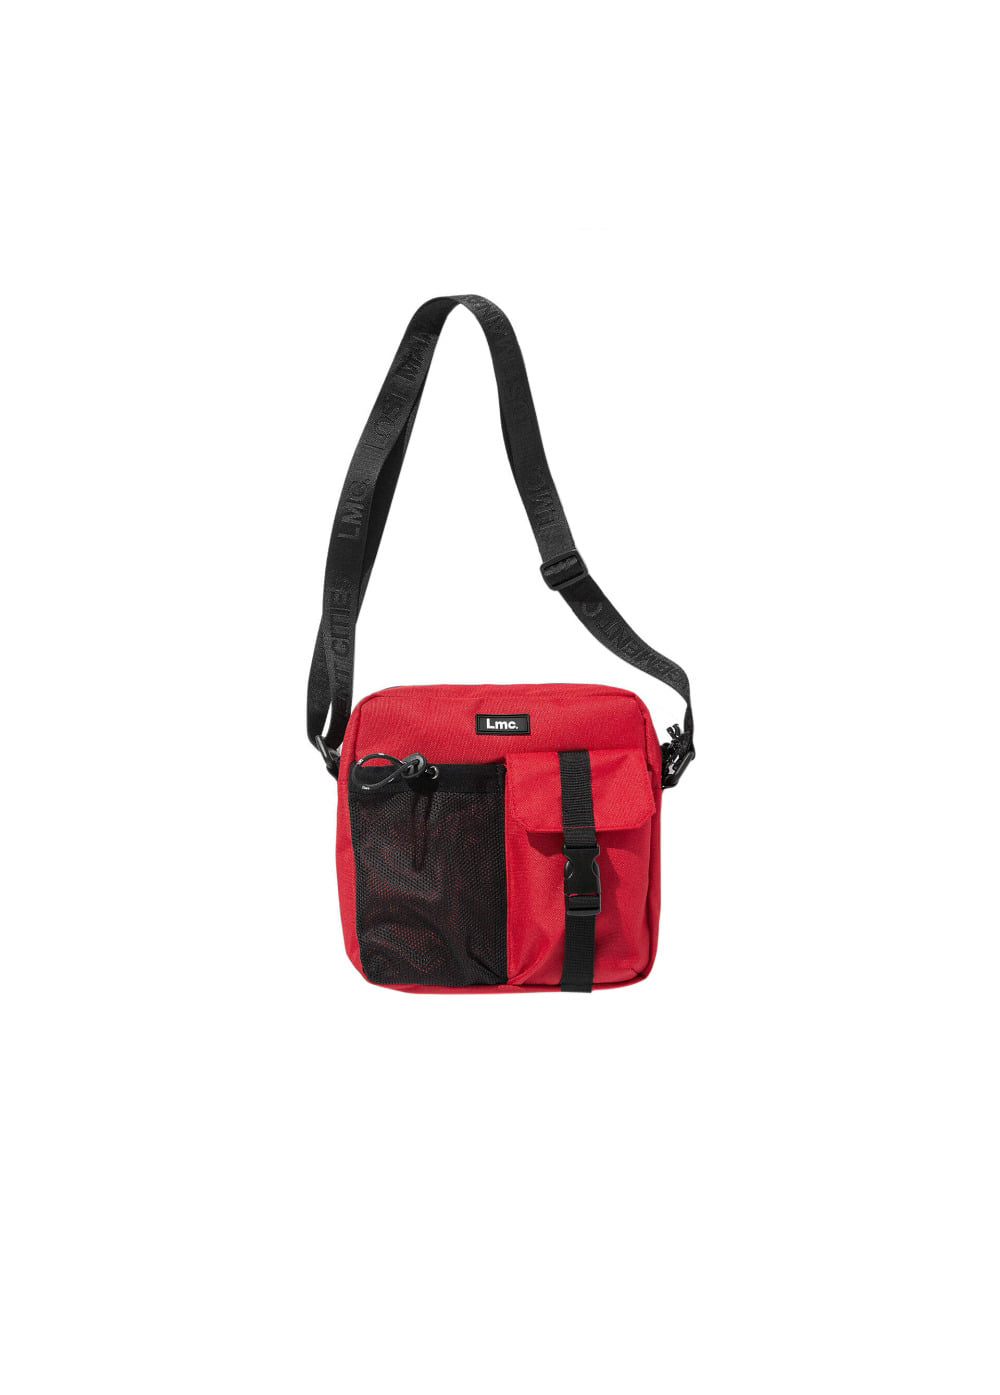 LMC MINI CROSS BAG red